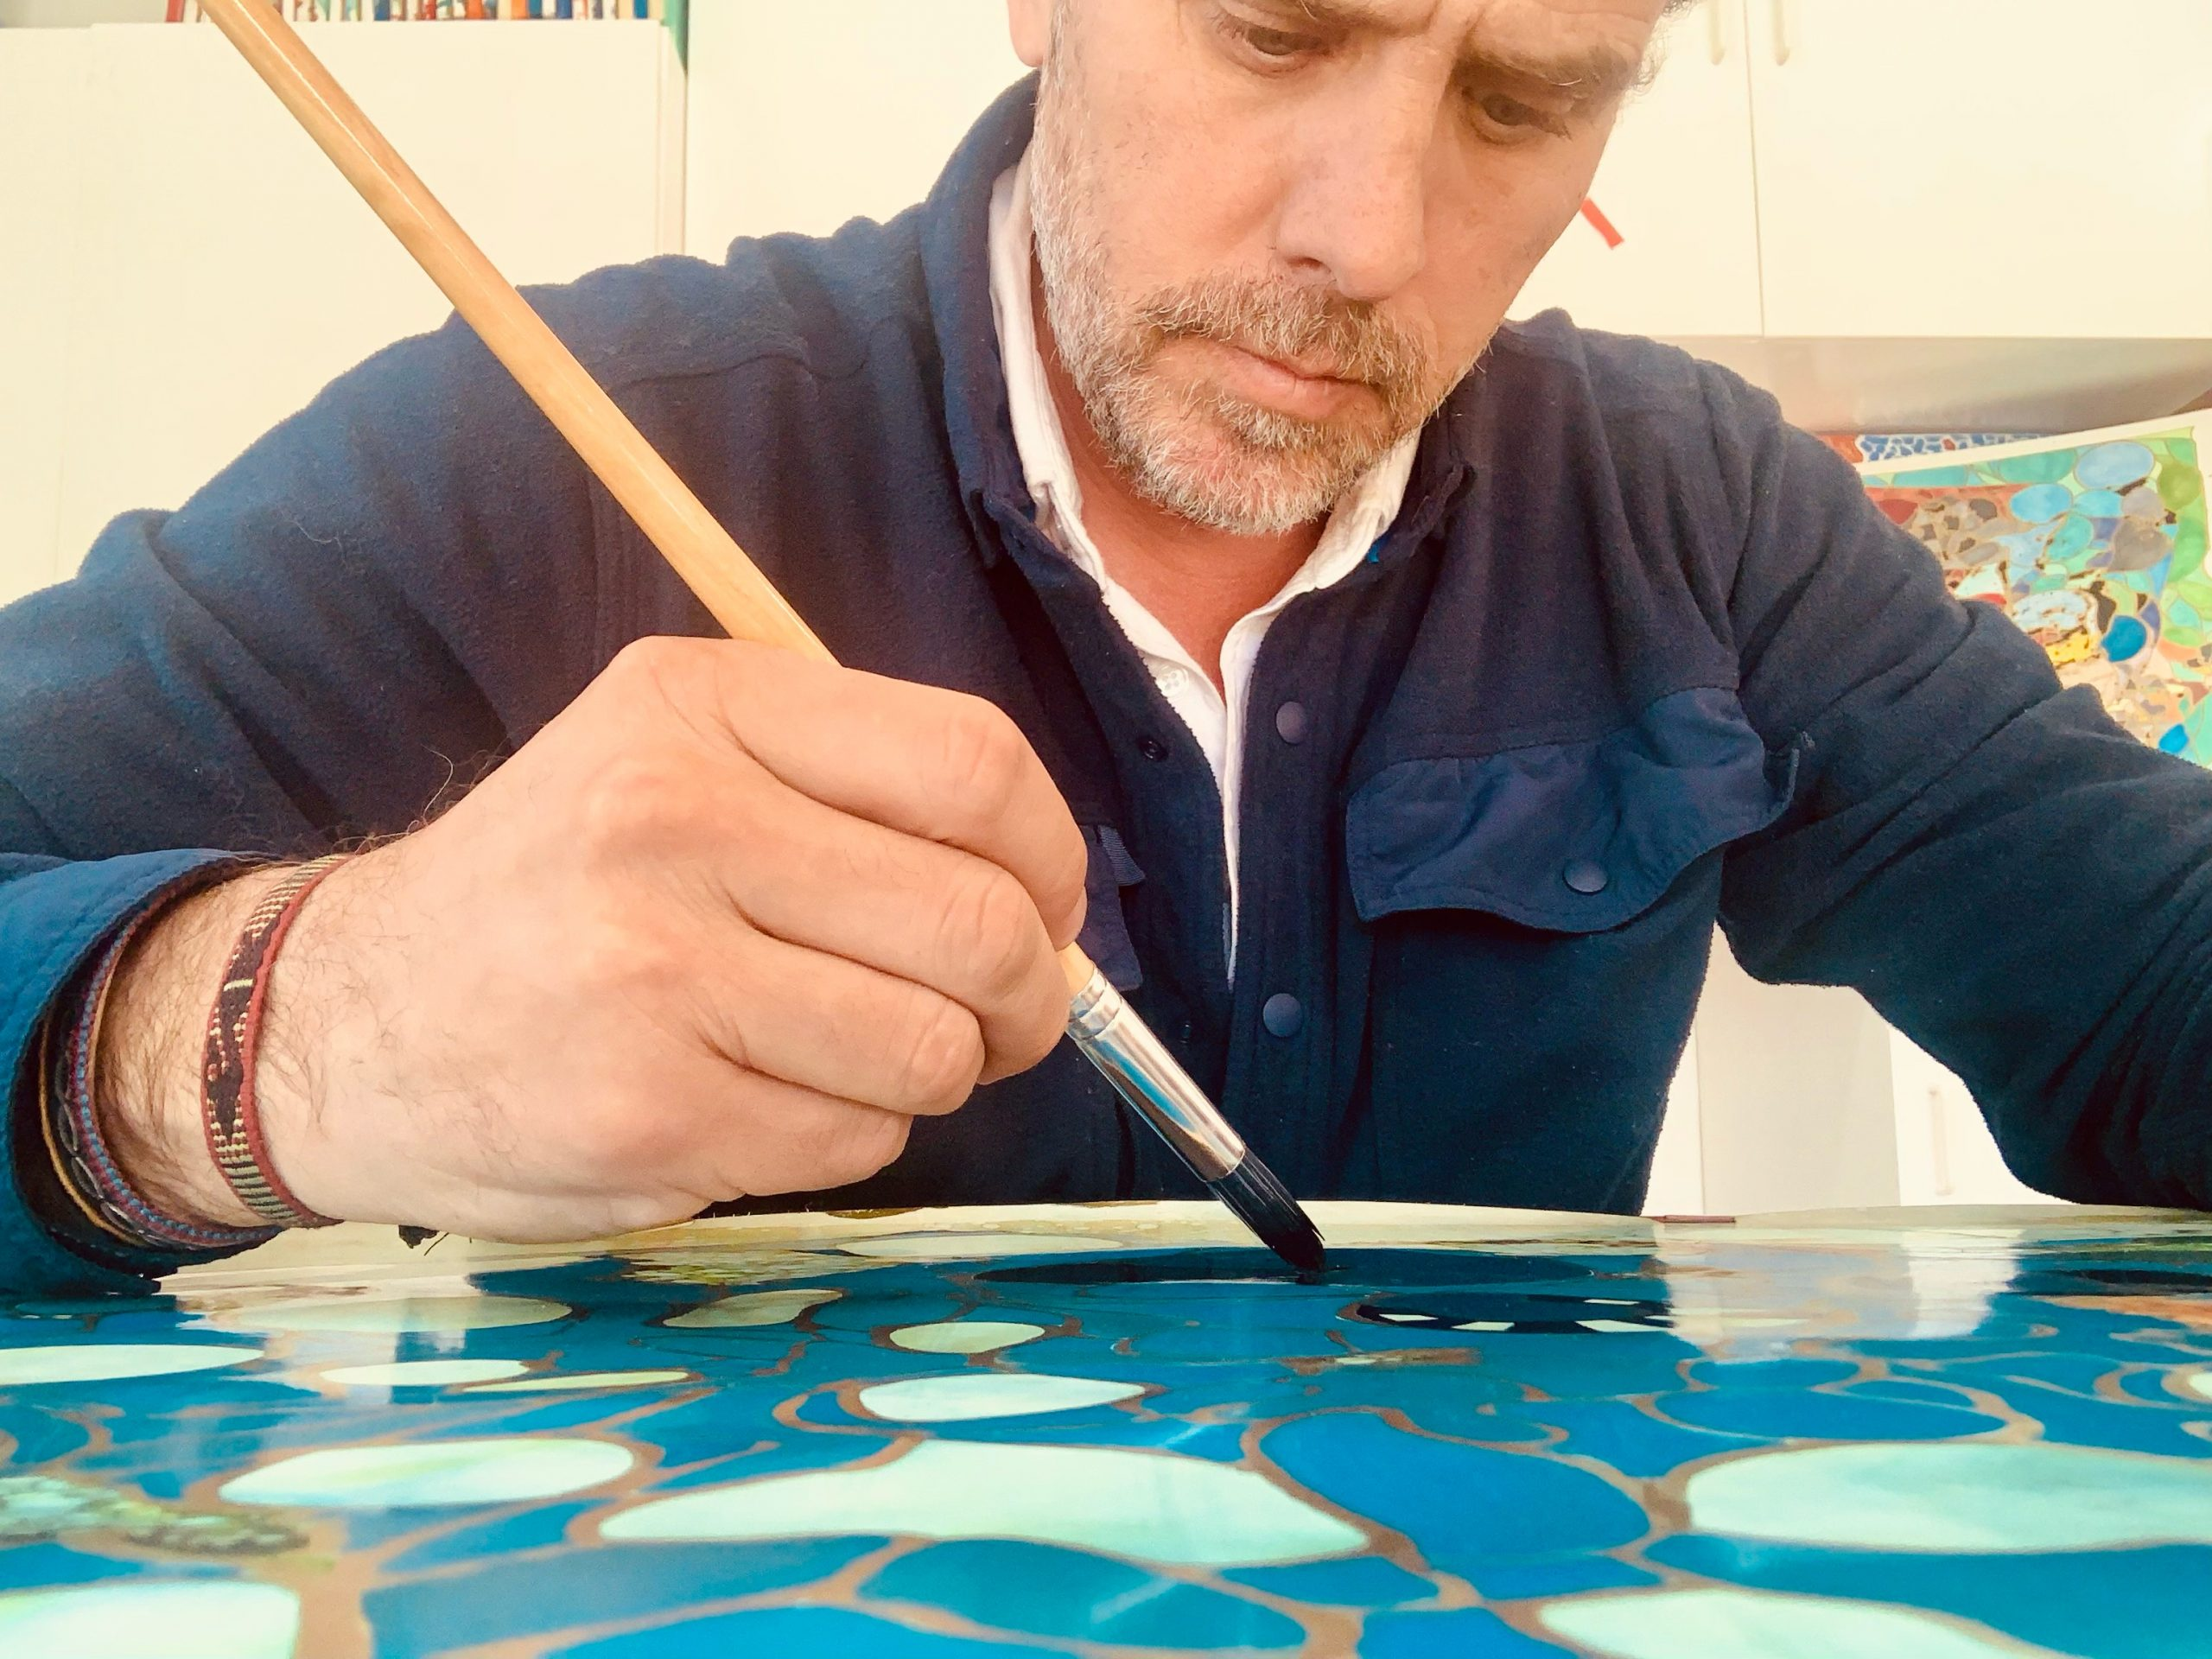 From Hunter Biden's Secret Art Deals to Misconduct at Arts Nonprofits: The Best & Worst of the Art World This Week